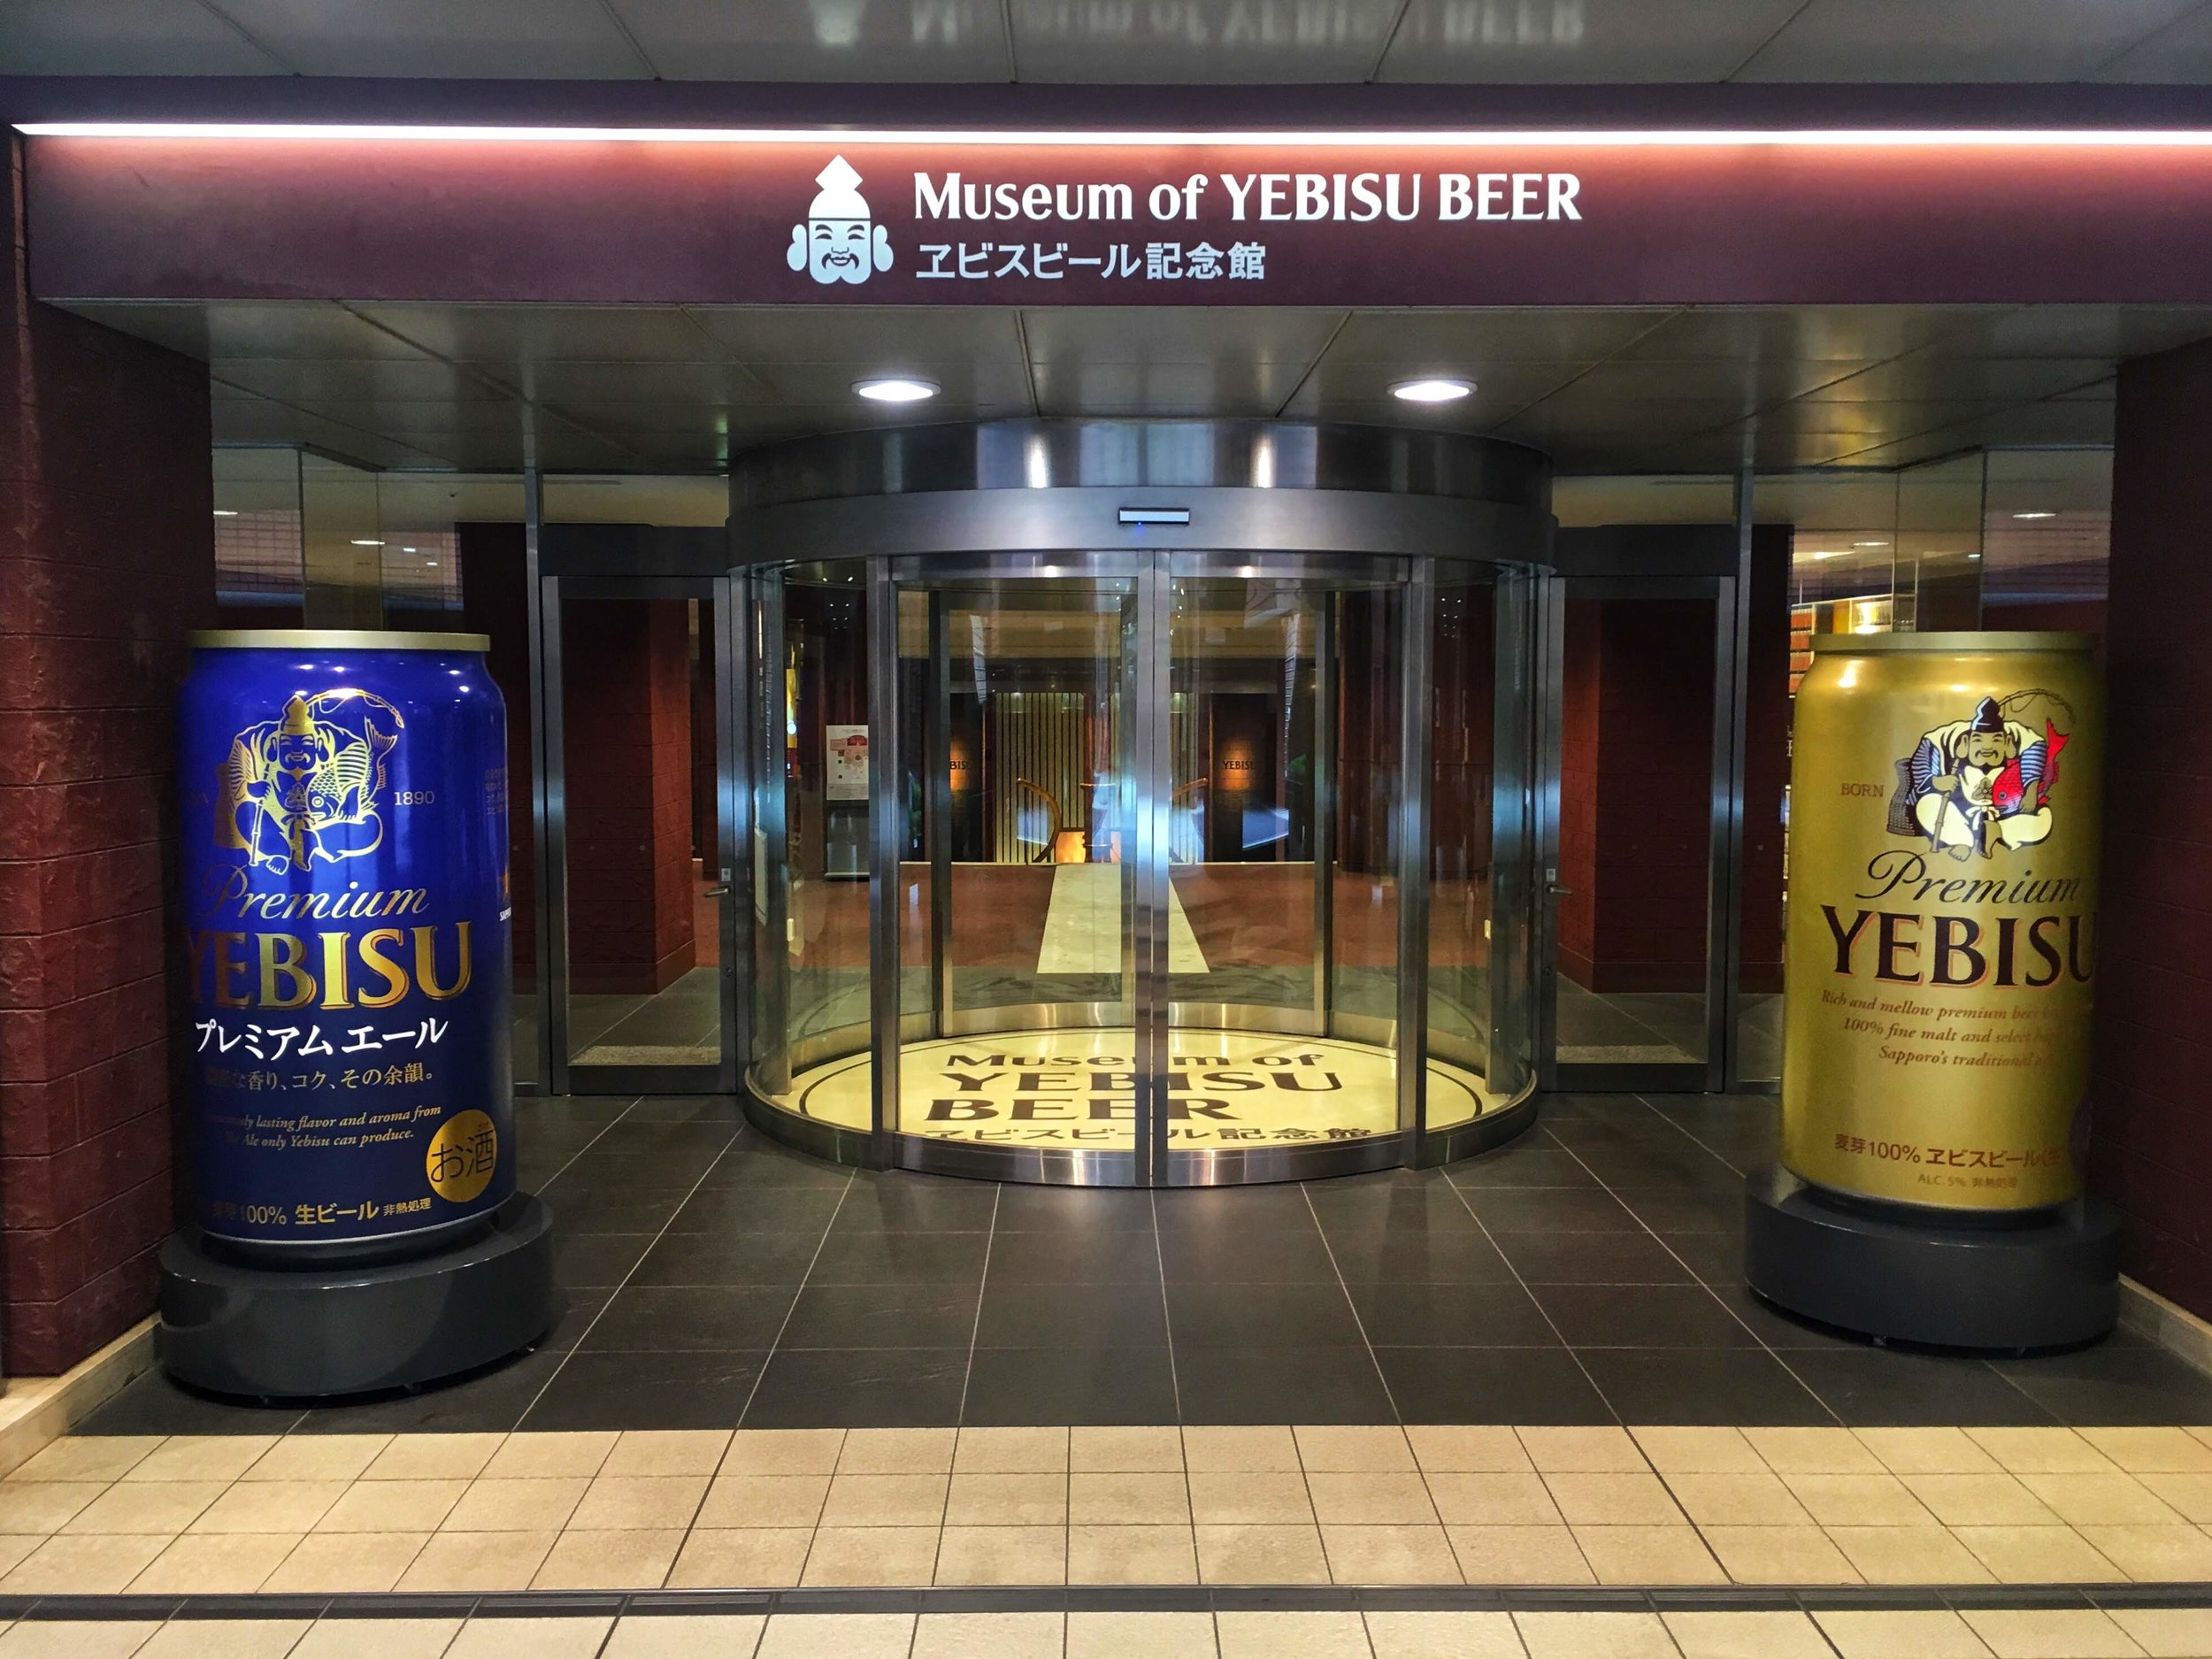 The Museum of Yebisu Beer is located near Ebisu Station (Tokyo Metro) in Japan